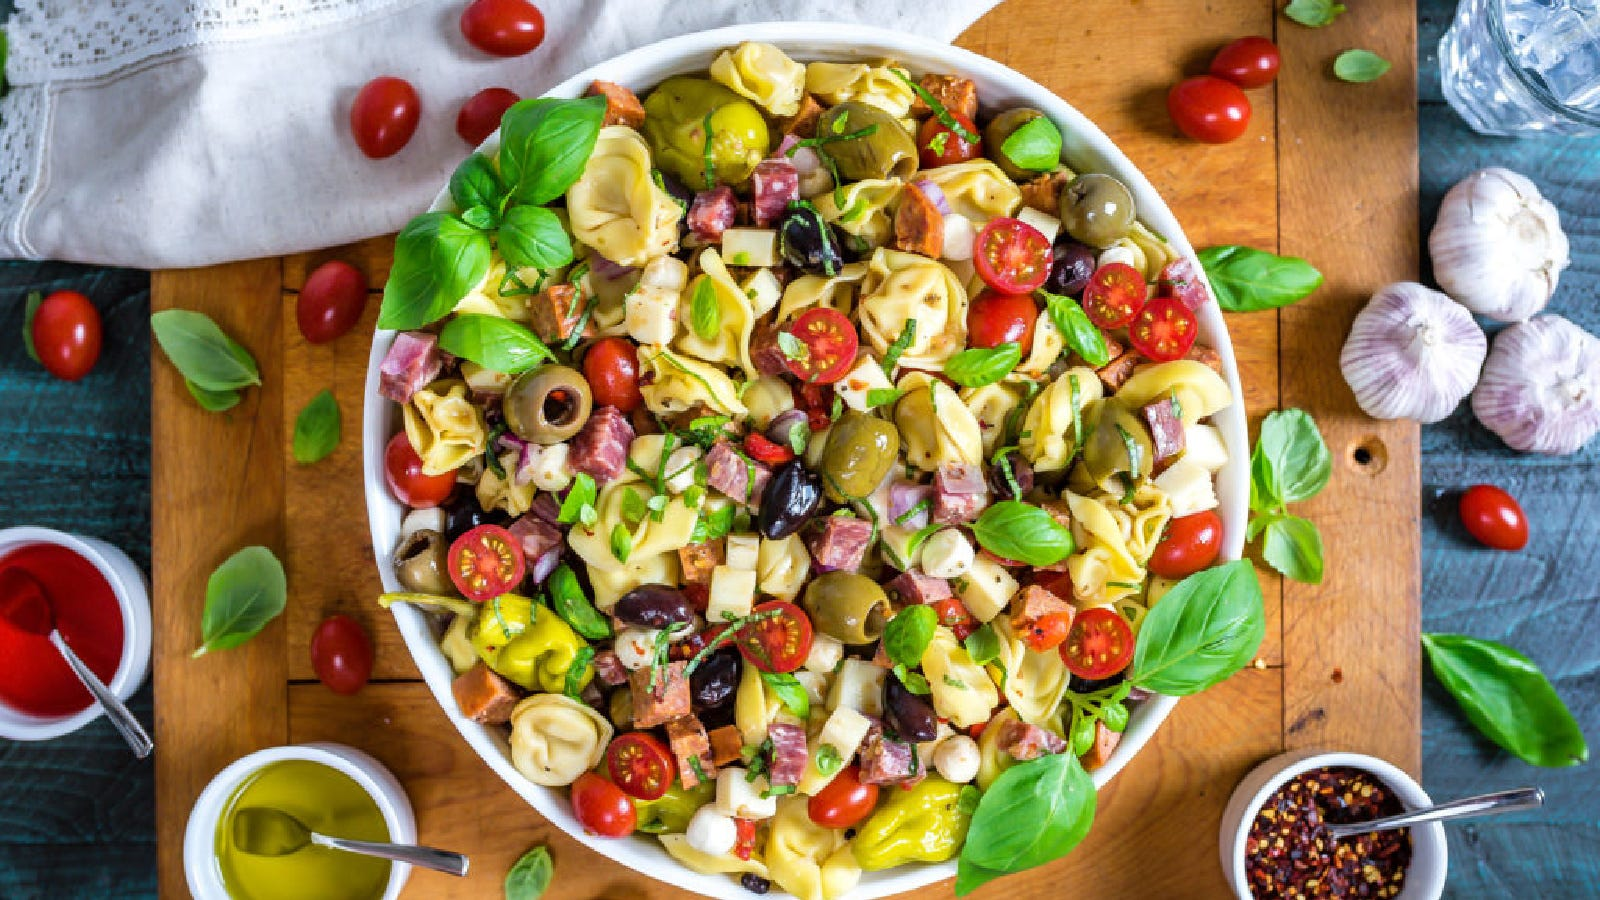 A big bowl of tortellini antipasto pasta salad with ingredients surrounding the bowl including cherry tomatoes, garlic, basil, pepper flakes etc.